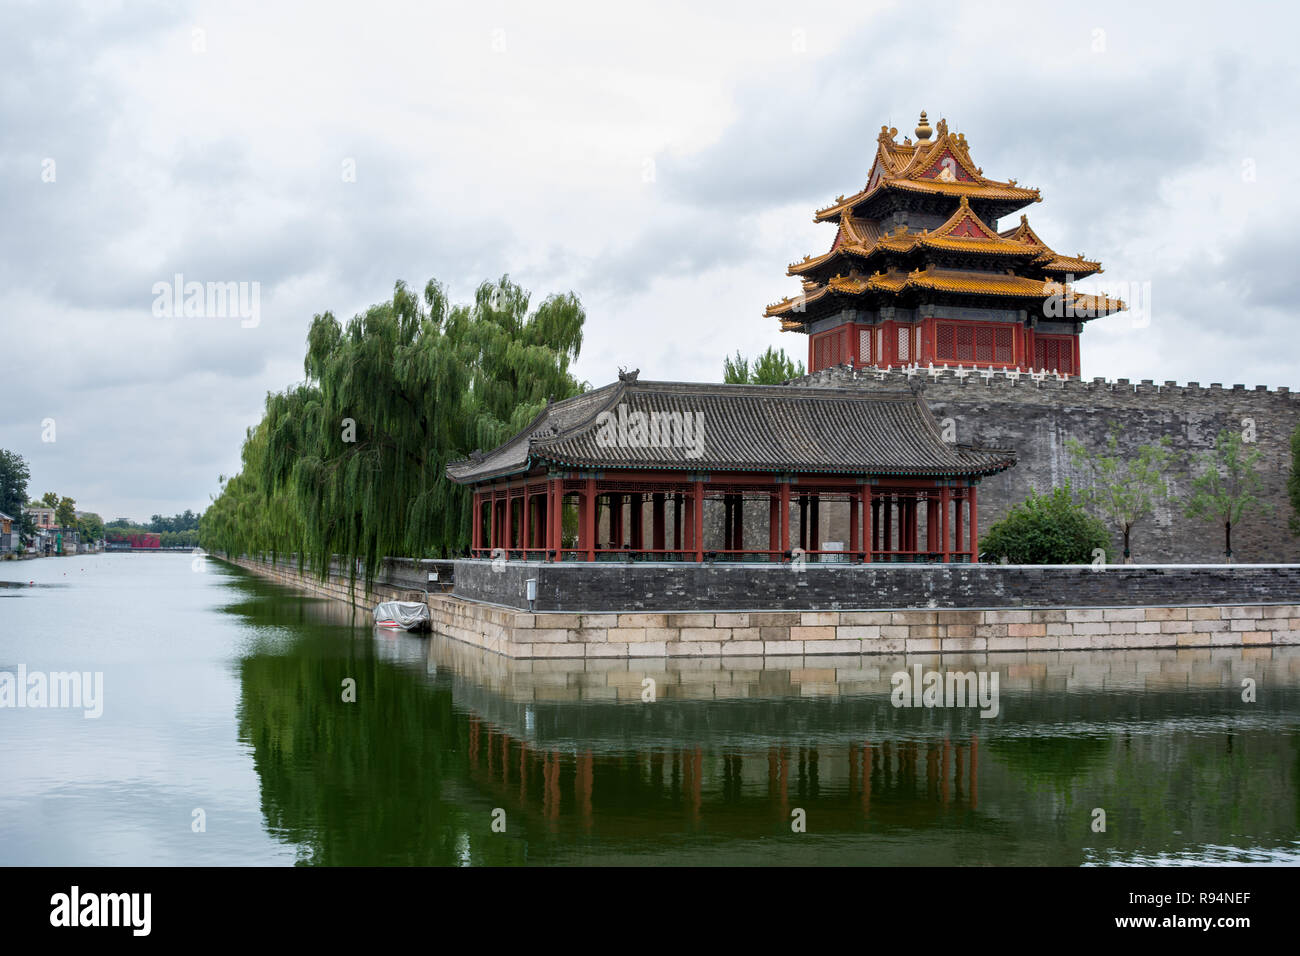 Corner tower and pavilion of The Forbidden City (north east corner) showing reflections in the surrounding tongzi river, Beijing, China Stock Photo